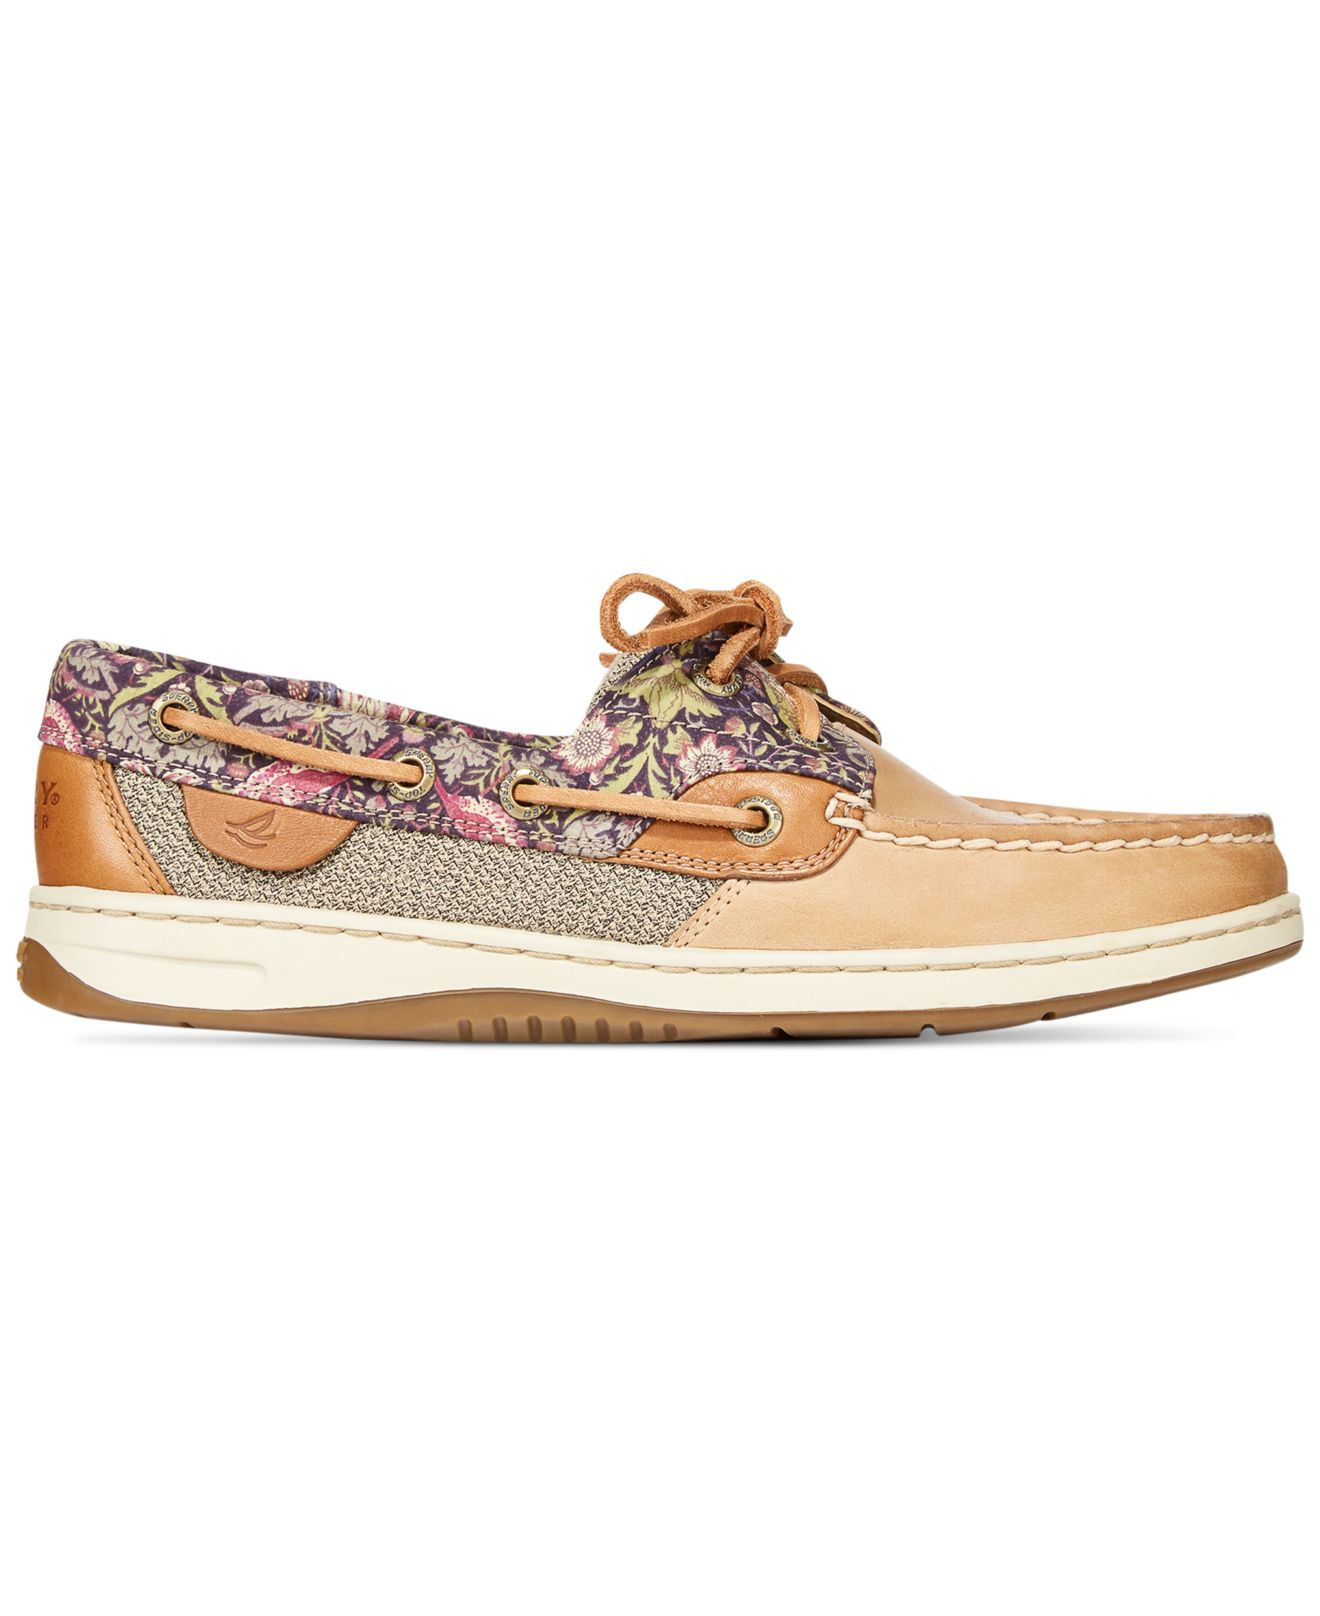 Sperry Top Sider Women S Bluefish Linen Oat Boat Shoes In